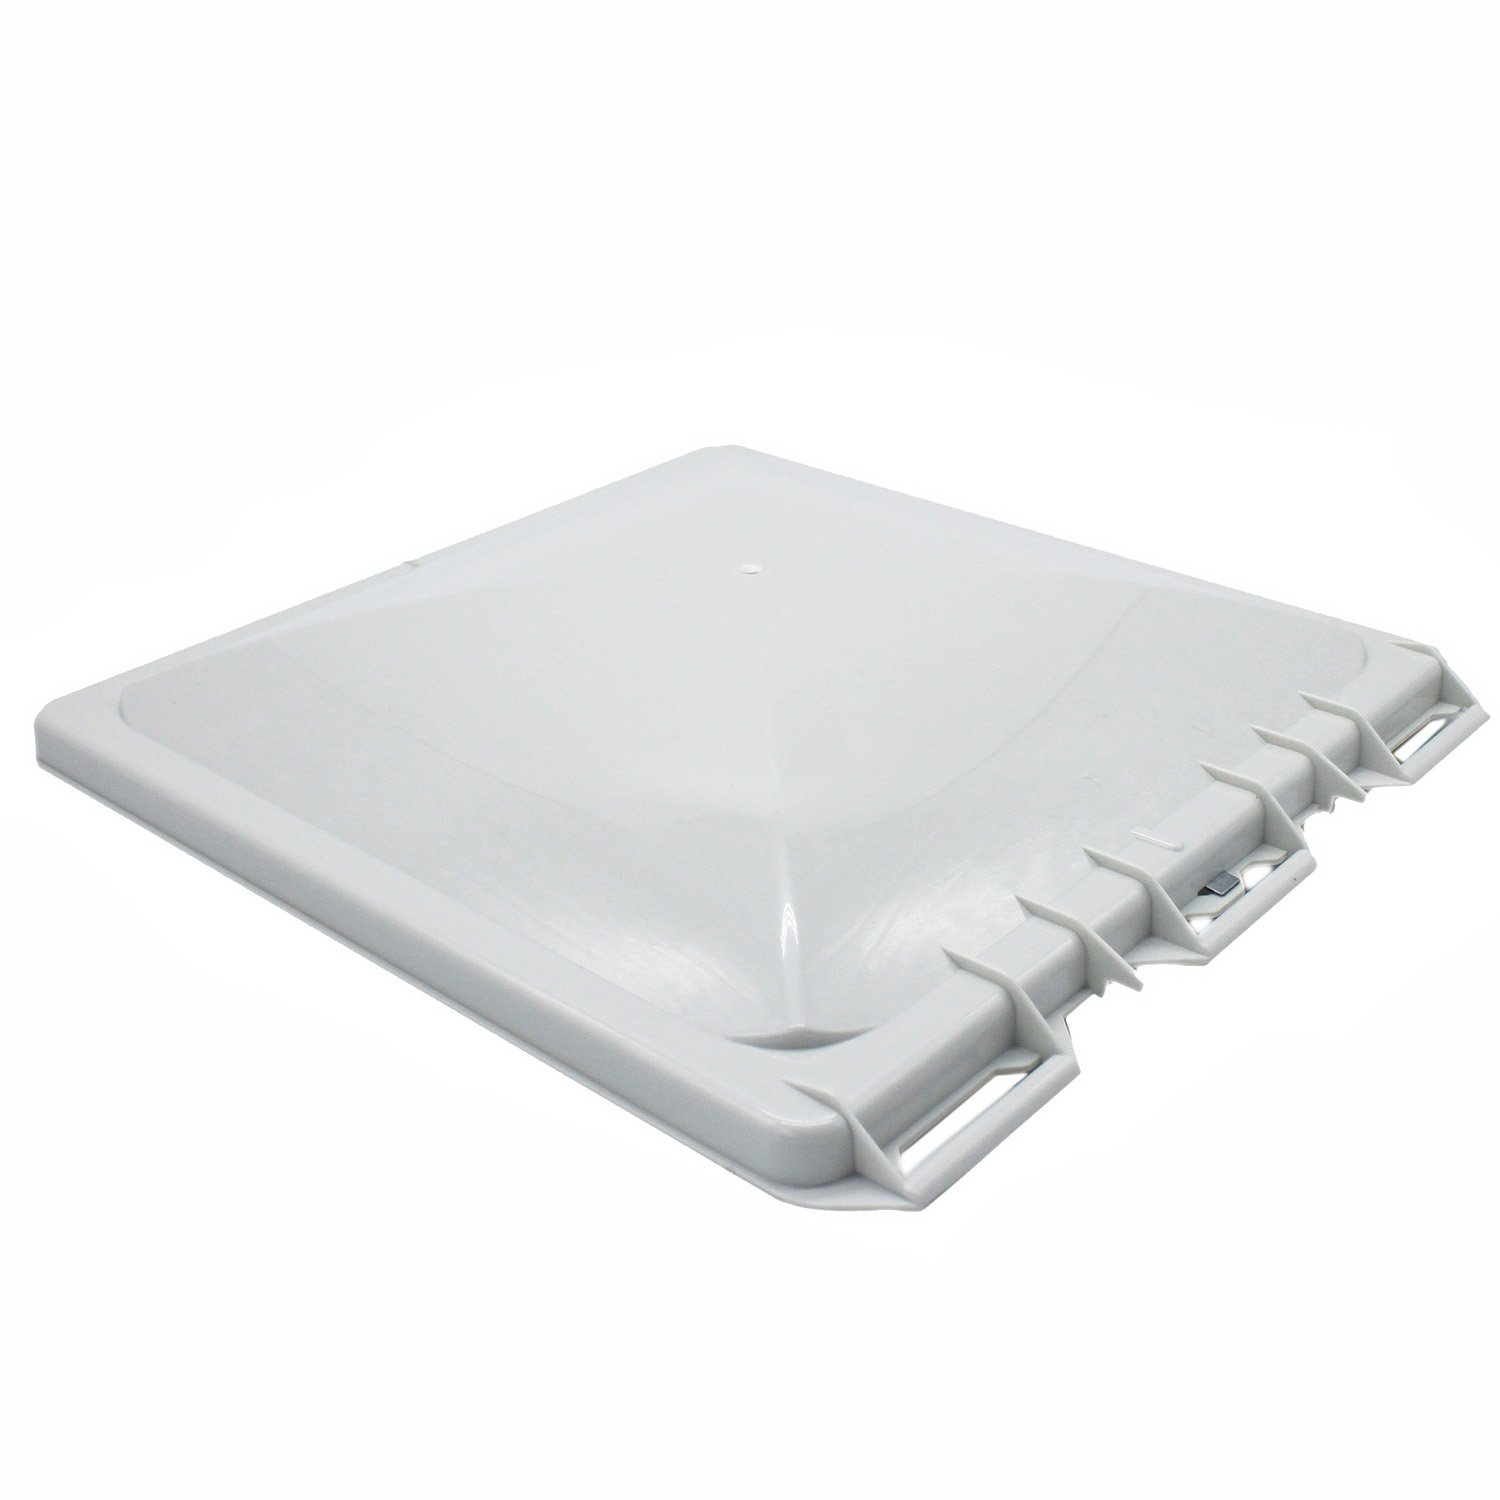 X-Haibei RV Roof Vent Lid Cover Replacment Plastic White 13x13x2 inches for Camper Trailer by X-Haibei